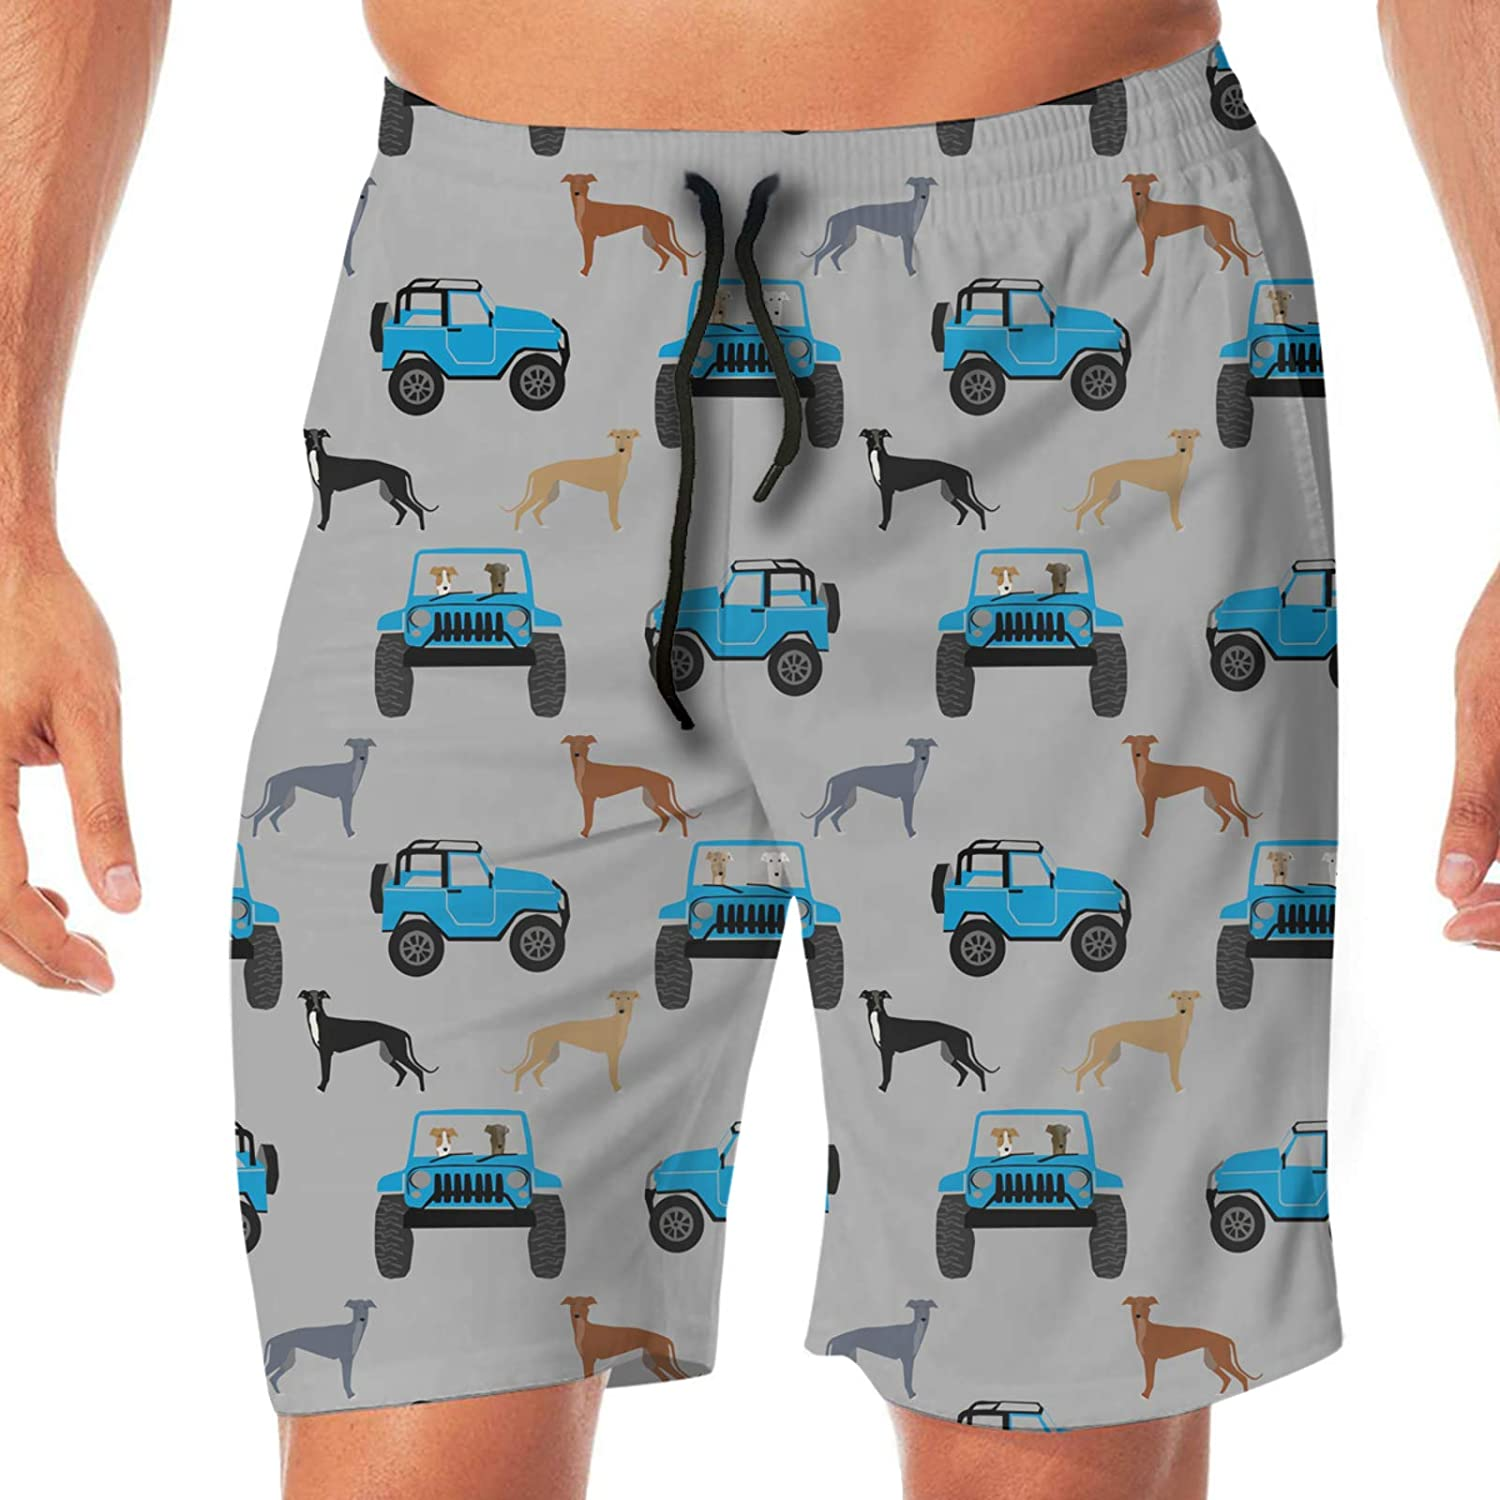 Coolfun Men¡s Beach Shorts Opening large release sale 3D Printed Max 44% OFF S Dry Swim Trunks Quick